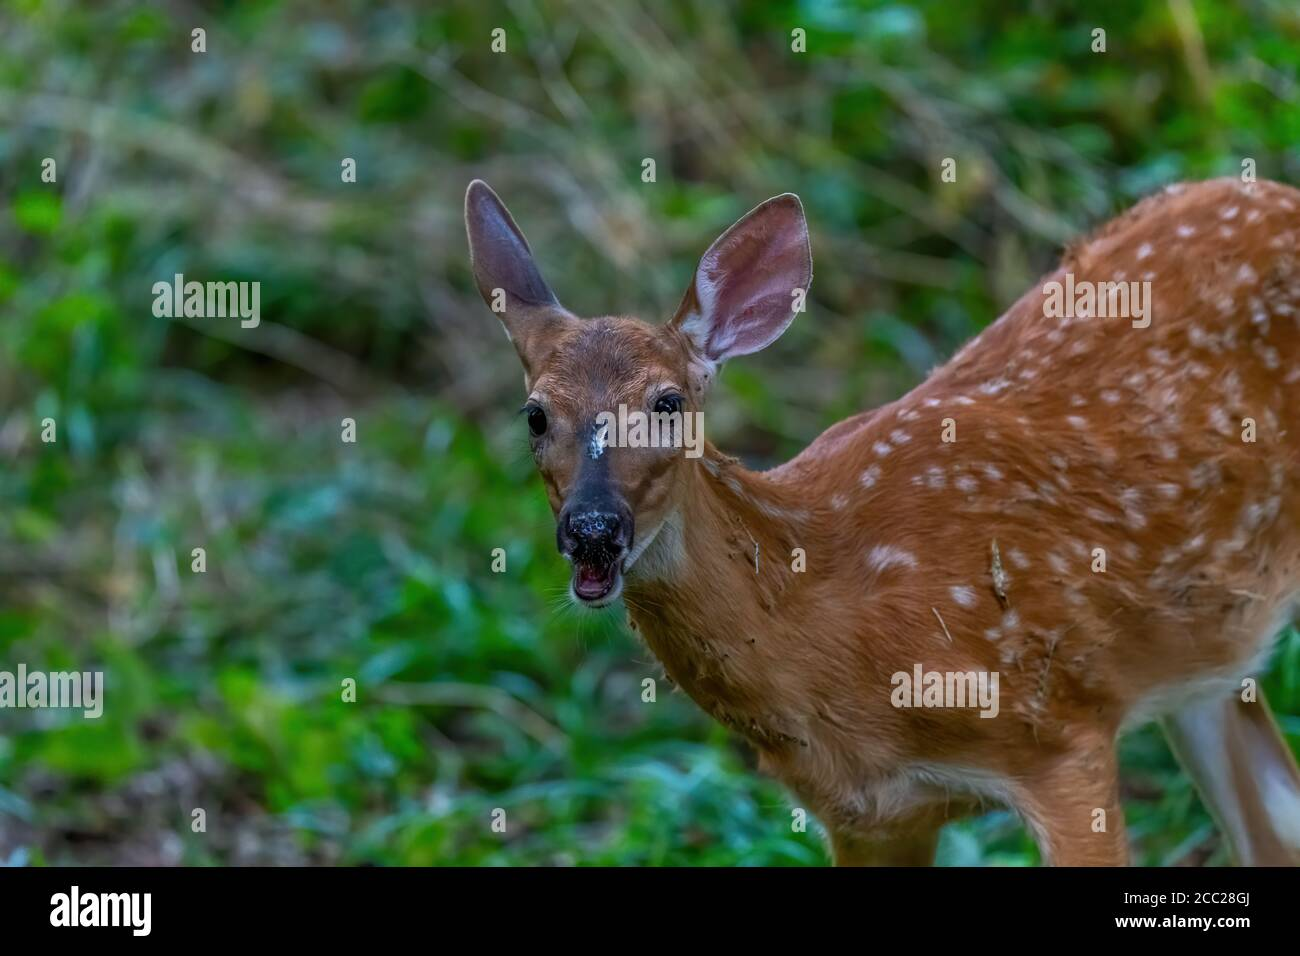 Close-up of a white tailed deer (Odocoileus virginianus) fawn in a forest in Michigan, USA. Stock Photo